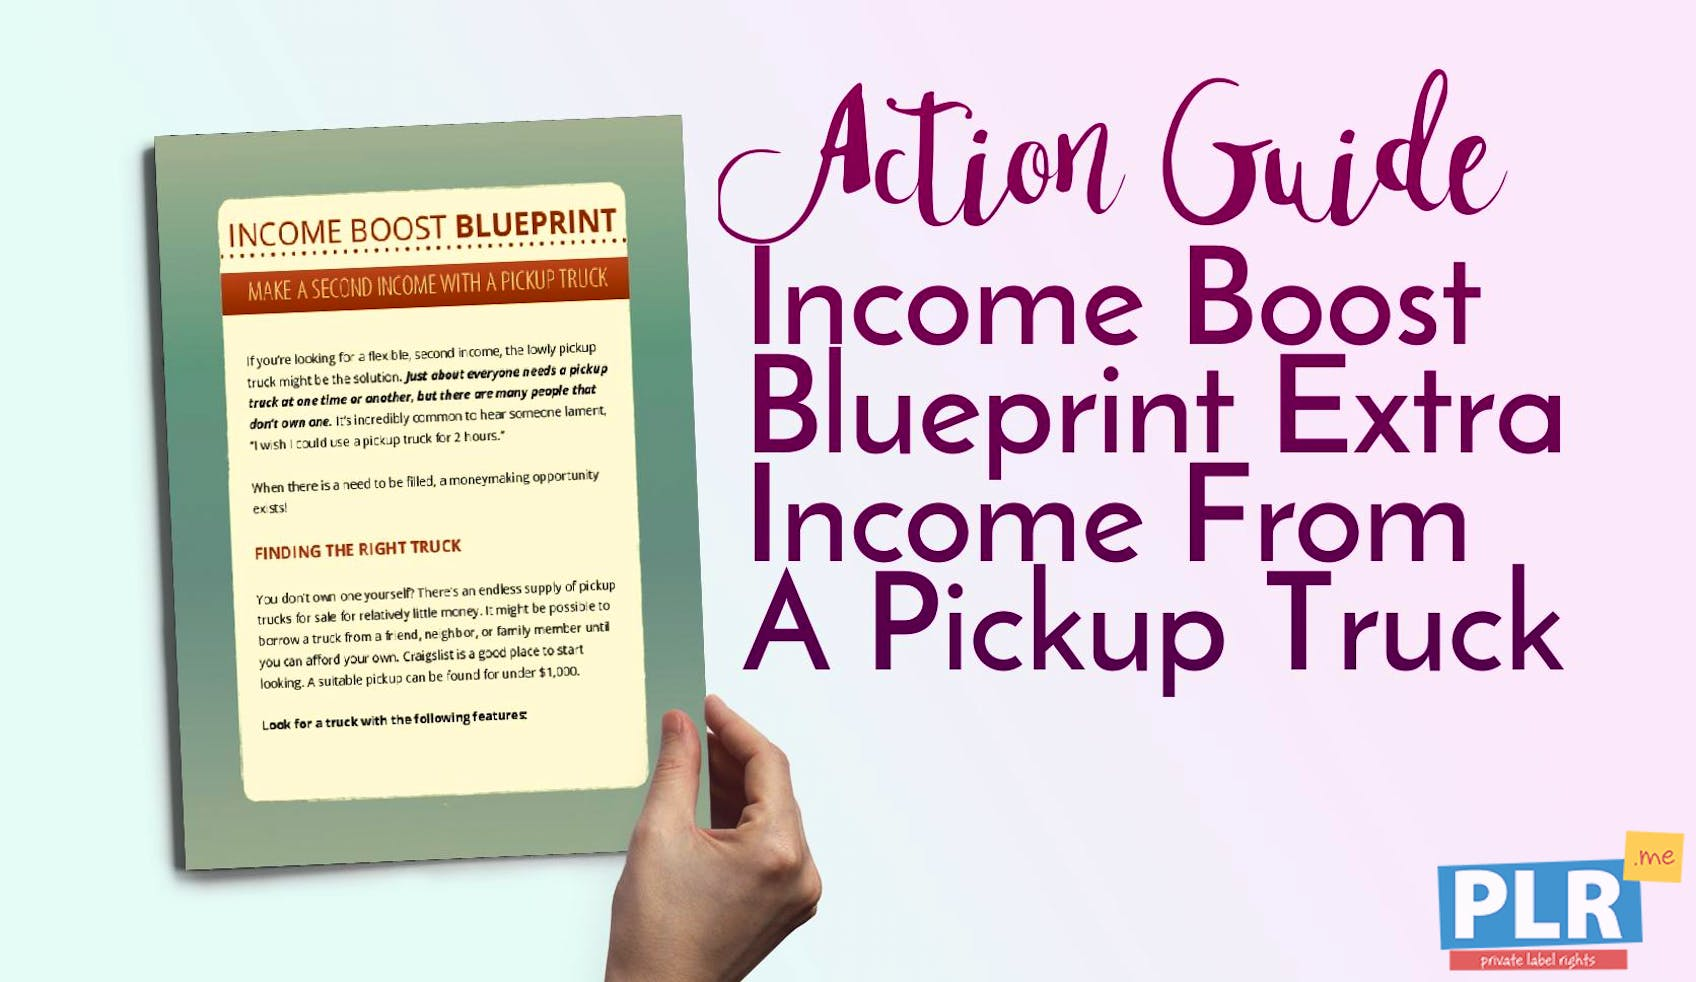 Income Boost Blueprint Extra Income From A Pickup Truck